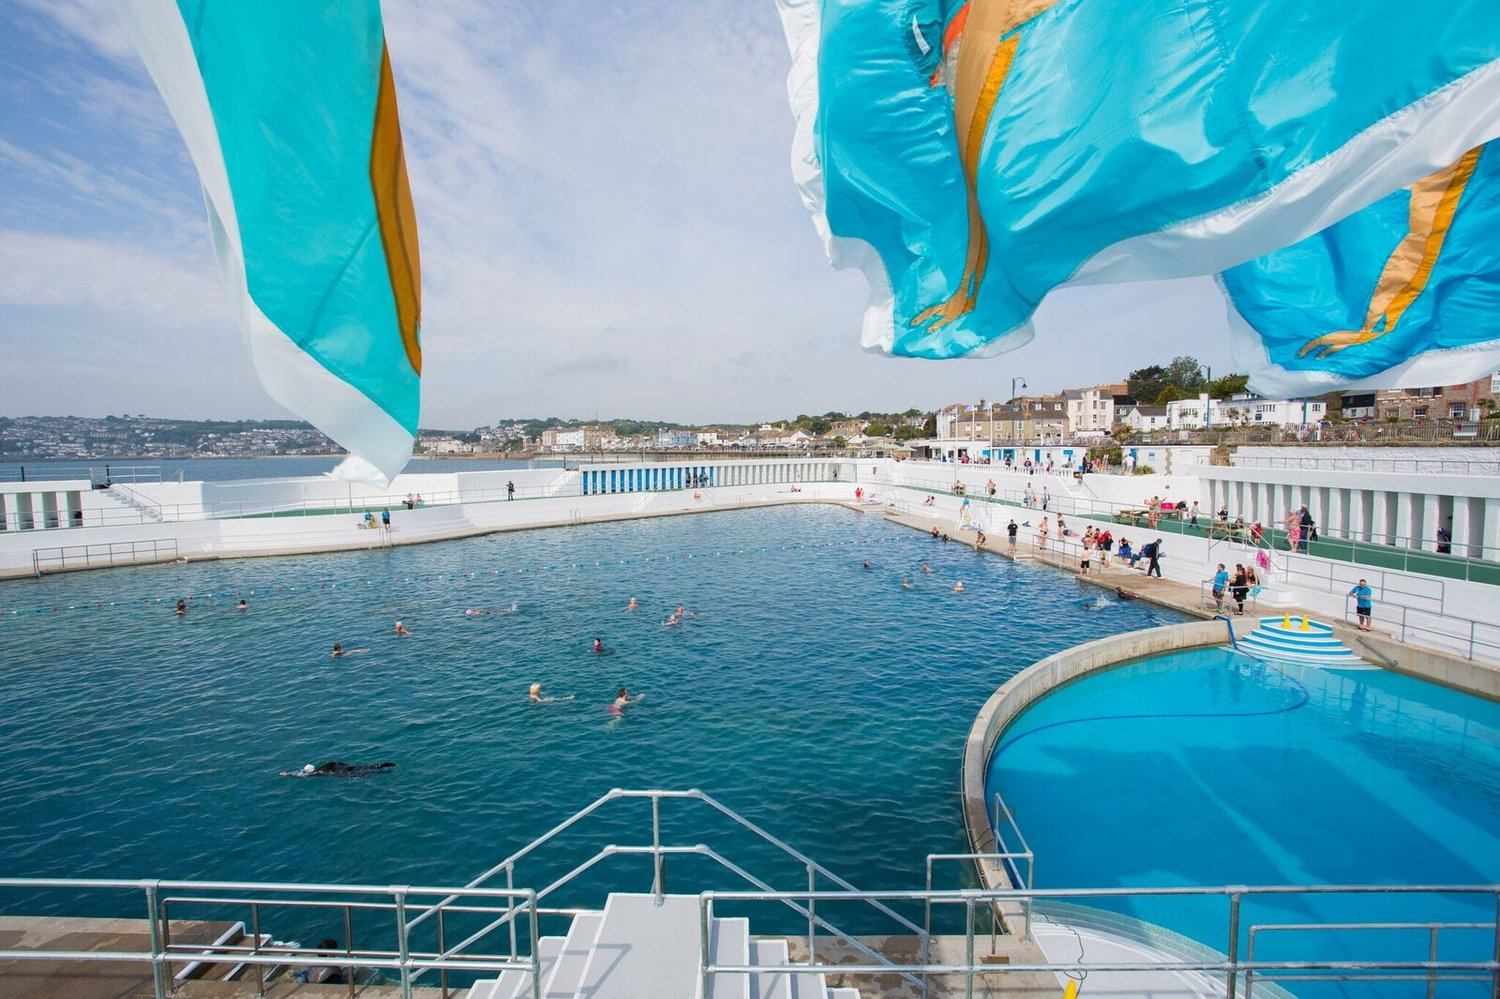 Jubilee+Pools+(c)+Jubilee+Pool+Penzance+